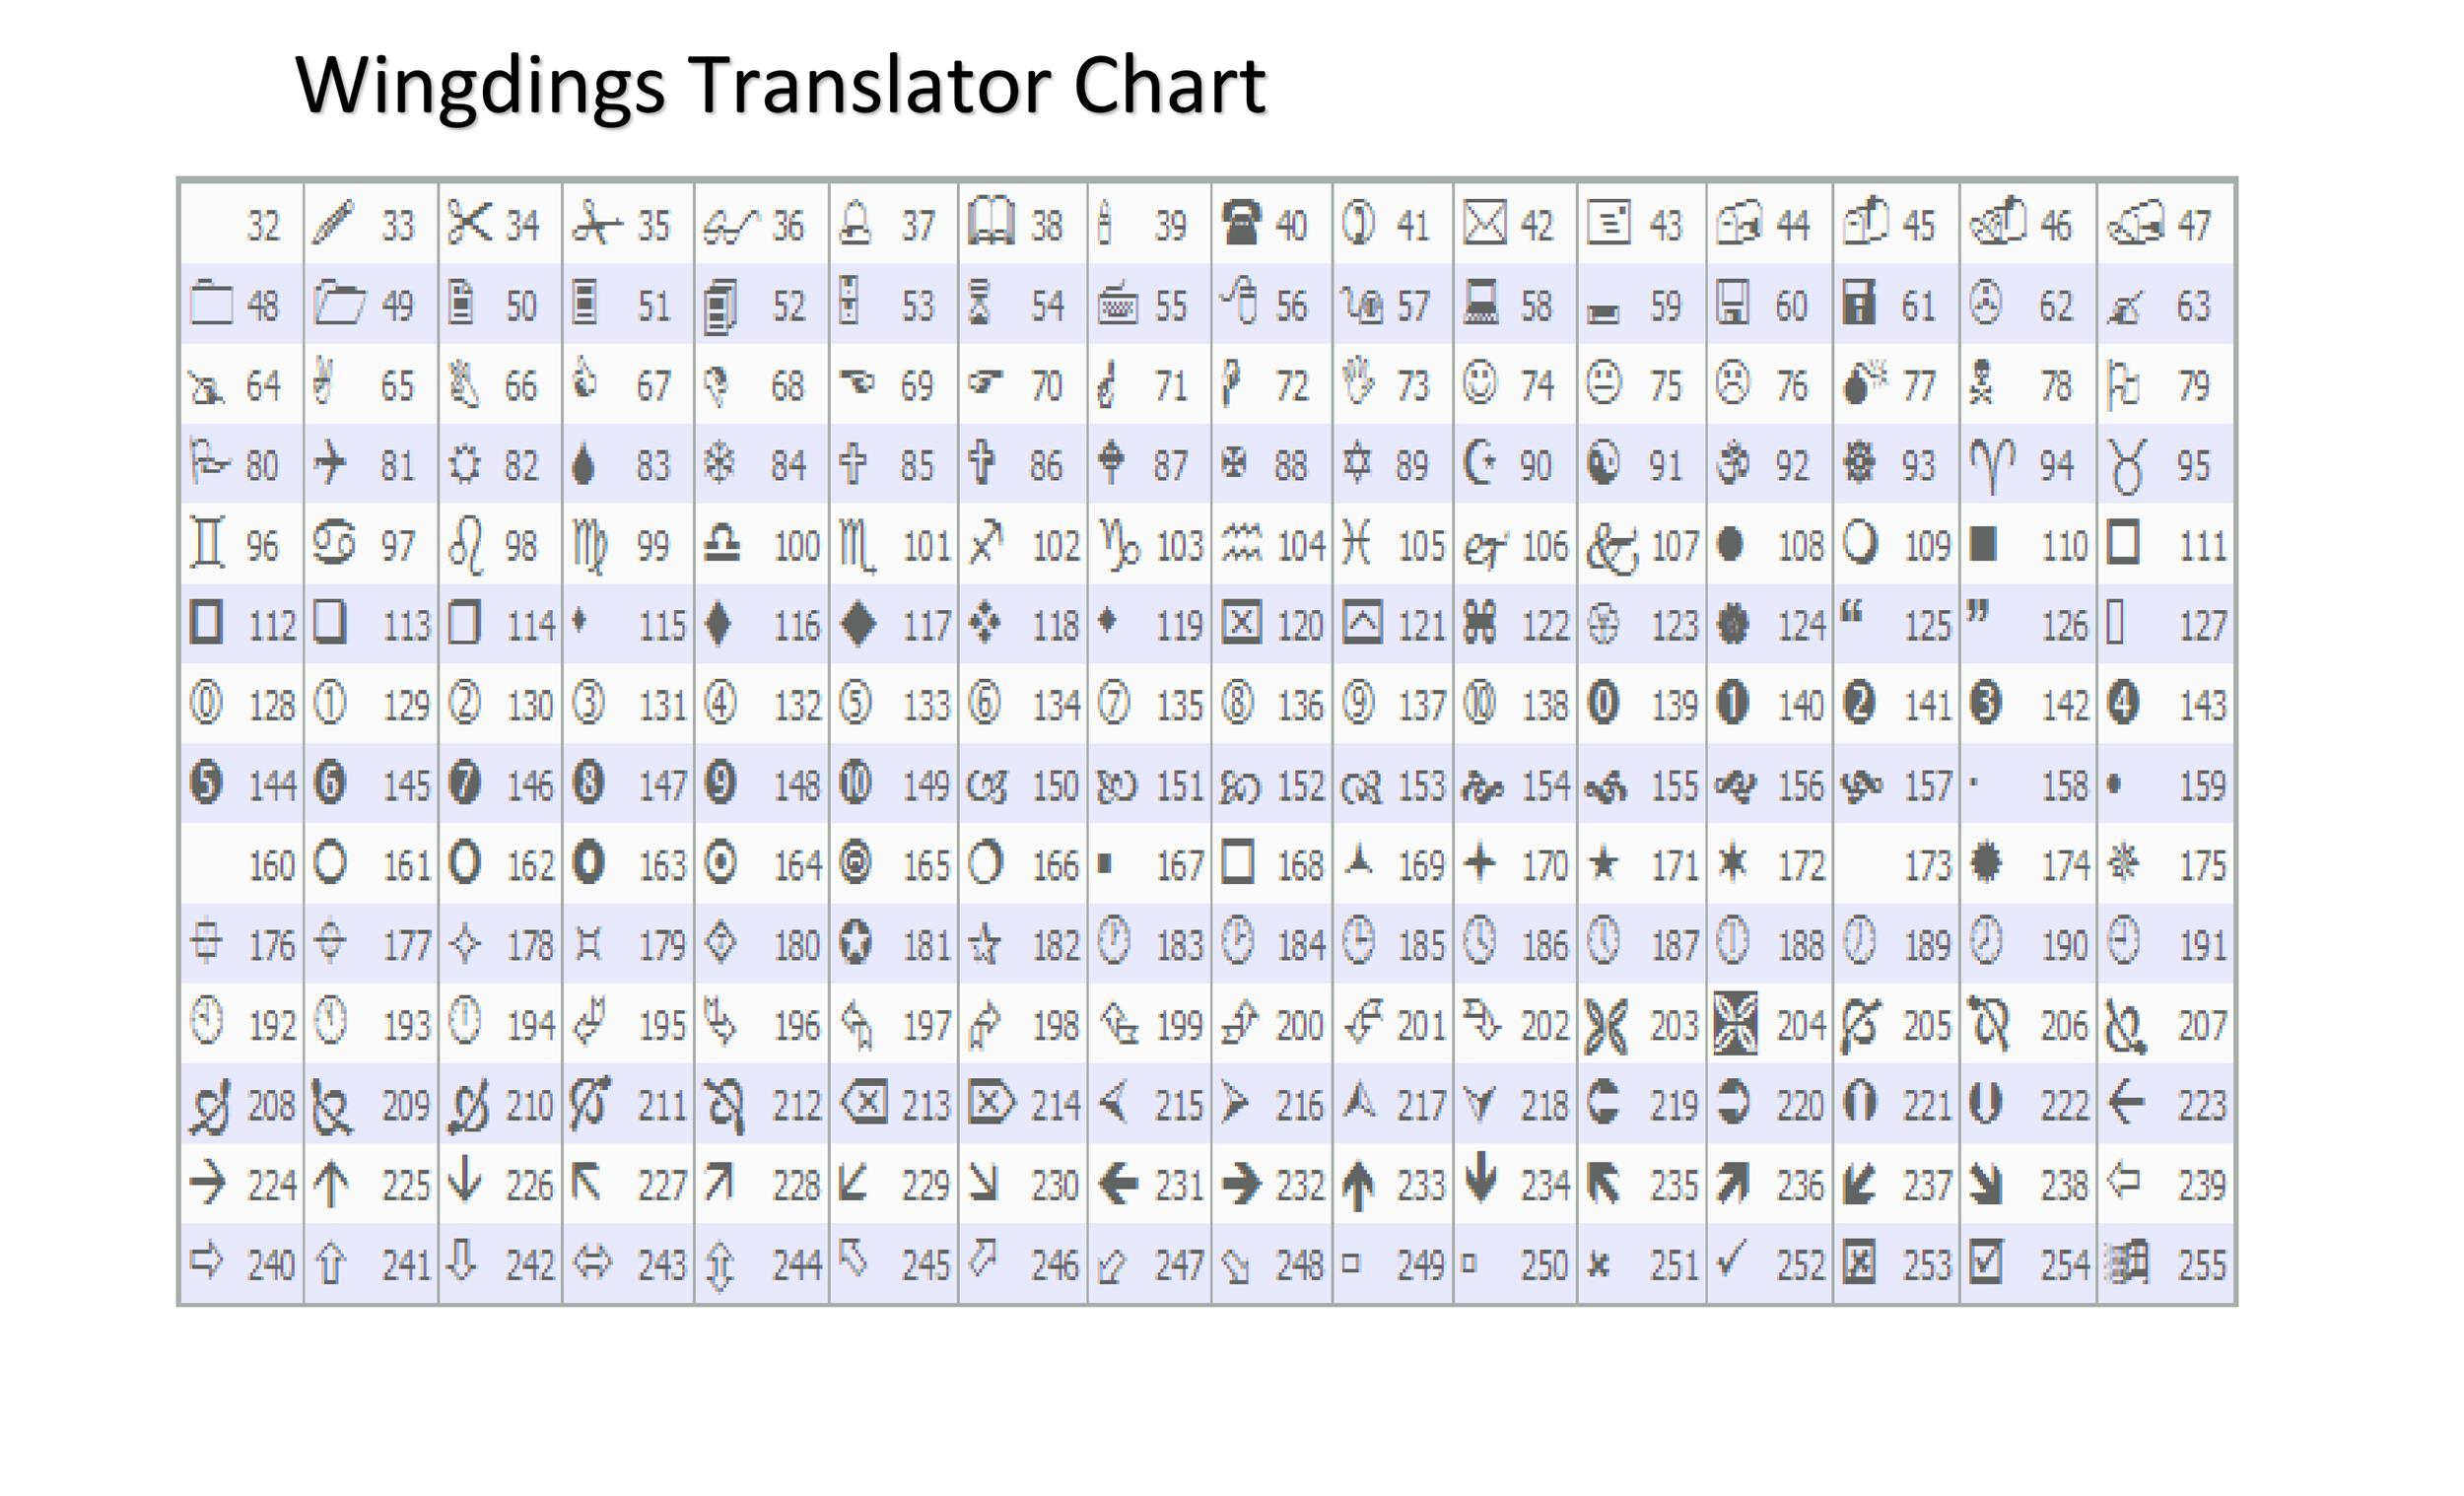 Wingdings Chart - Design Templates - sample wingdings chart